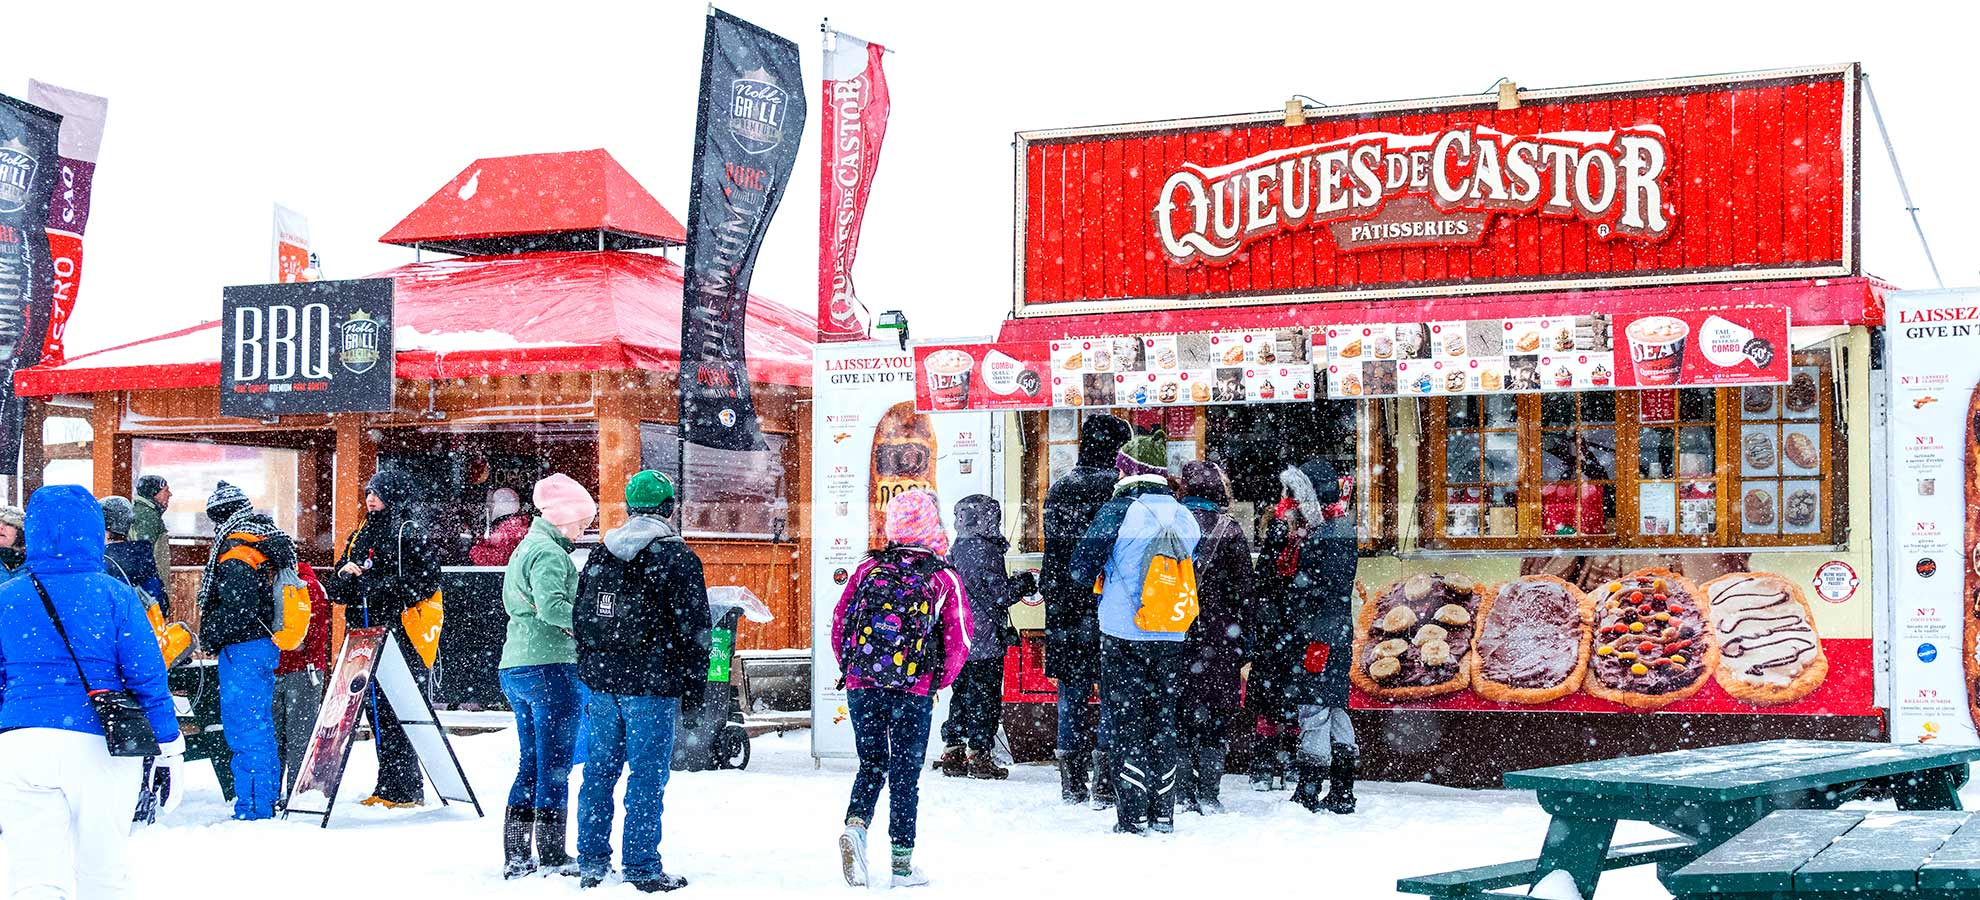 Line ups in winter to street food kiosks - barbecue and beaver tails